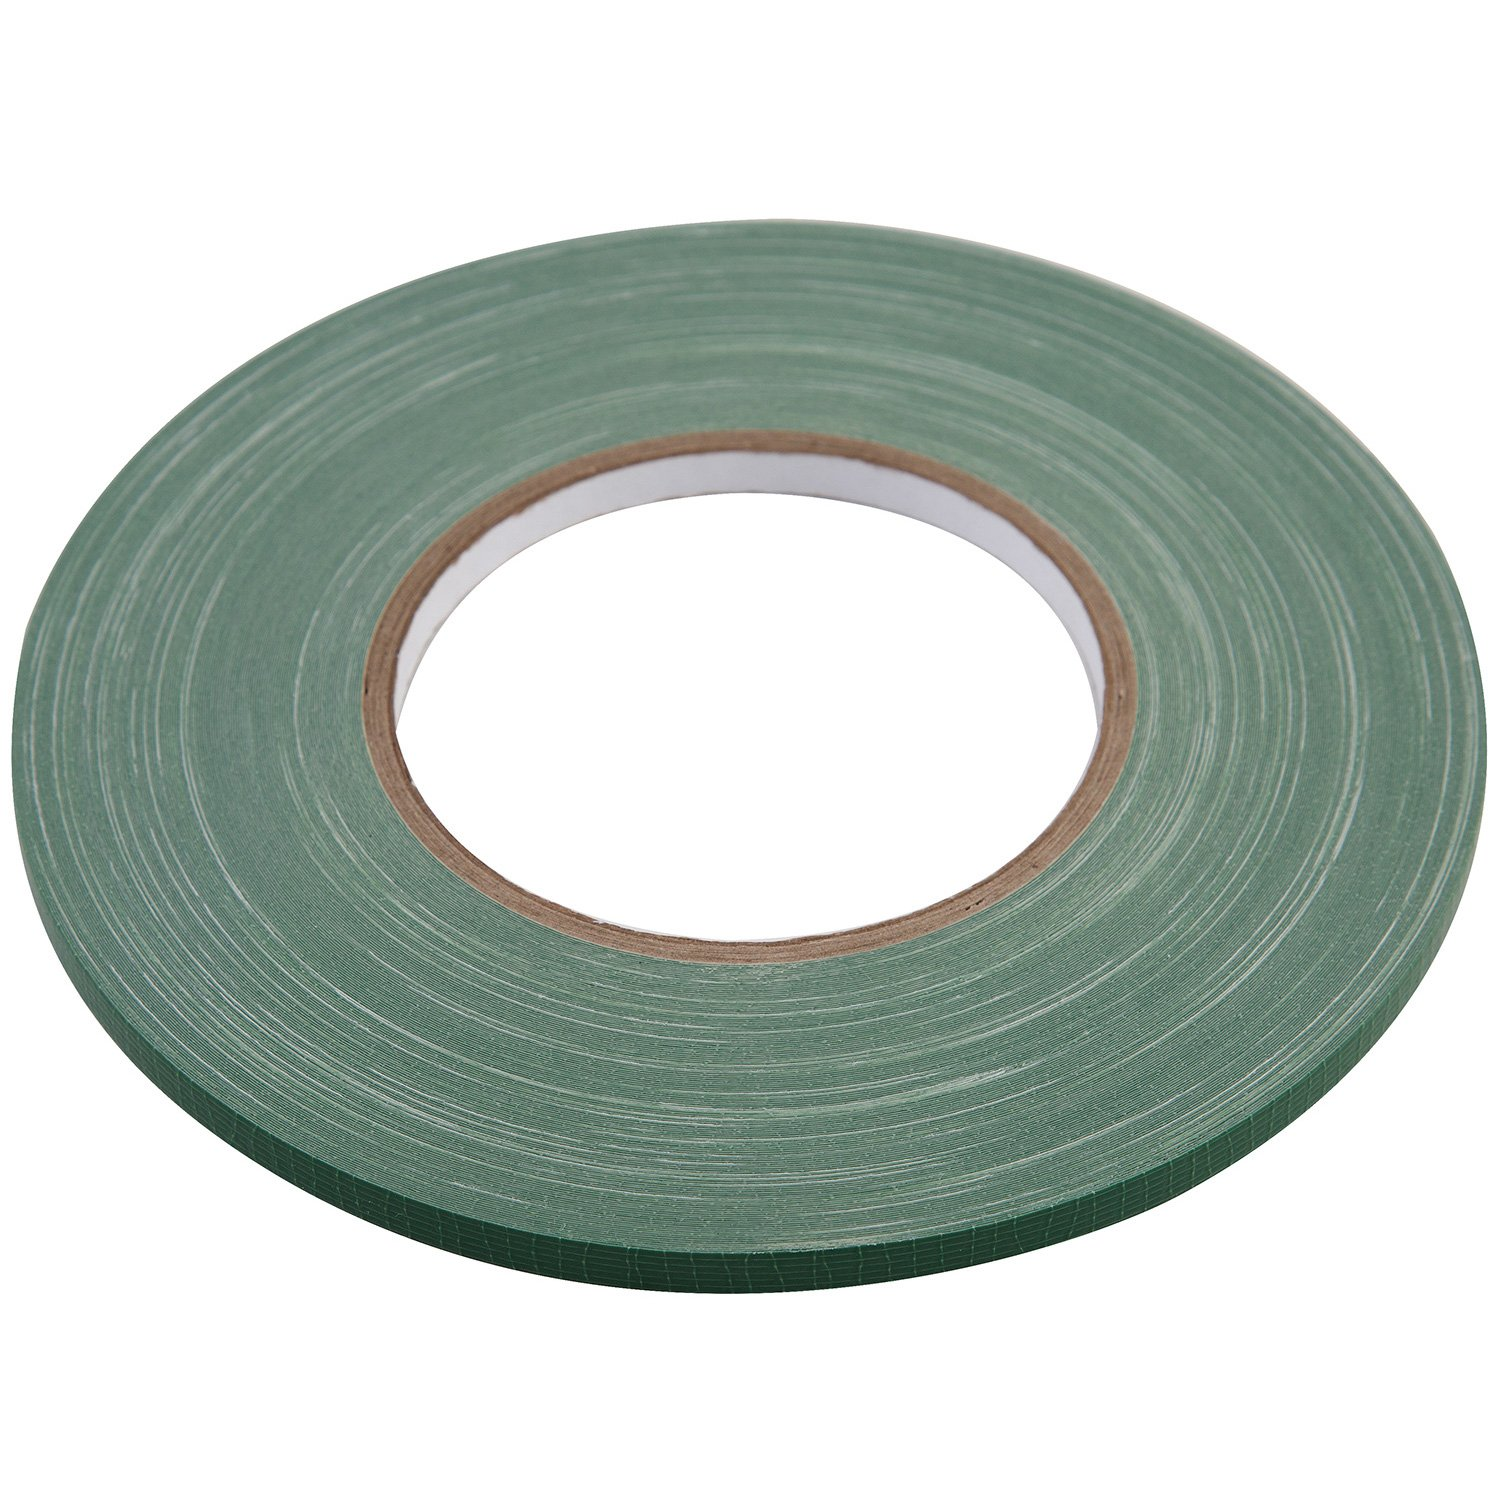 "Floral Tape Green, Flower Wrap Adhesive Waterproof Tape for Bouquets by Royal Imports 0.25"" - 1 Roll"